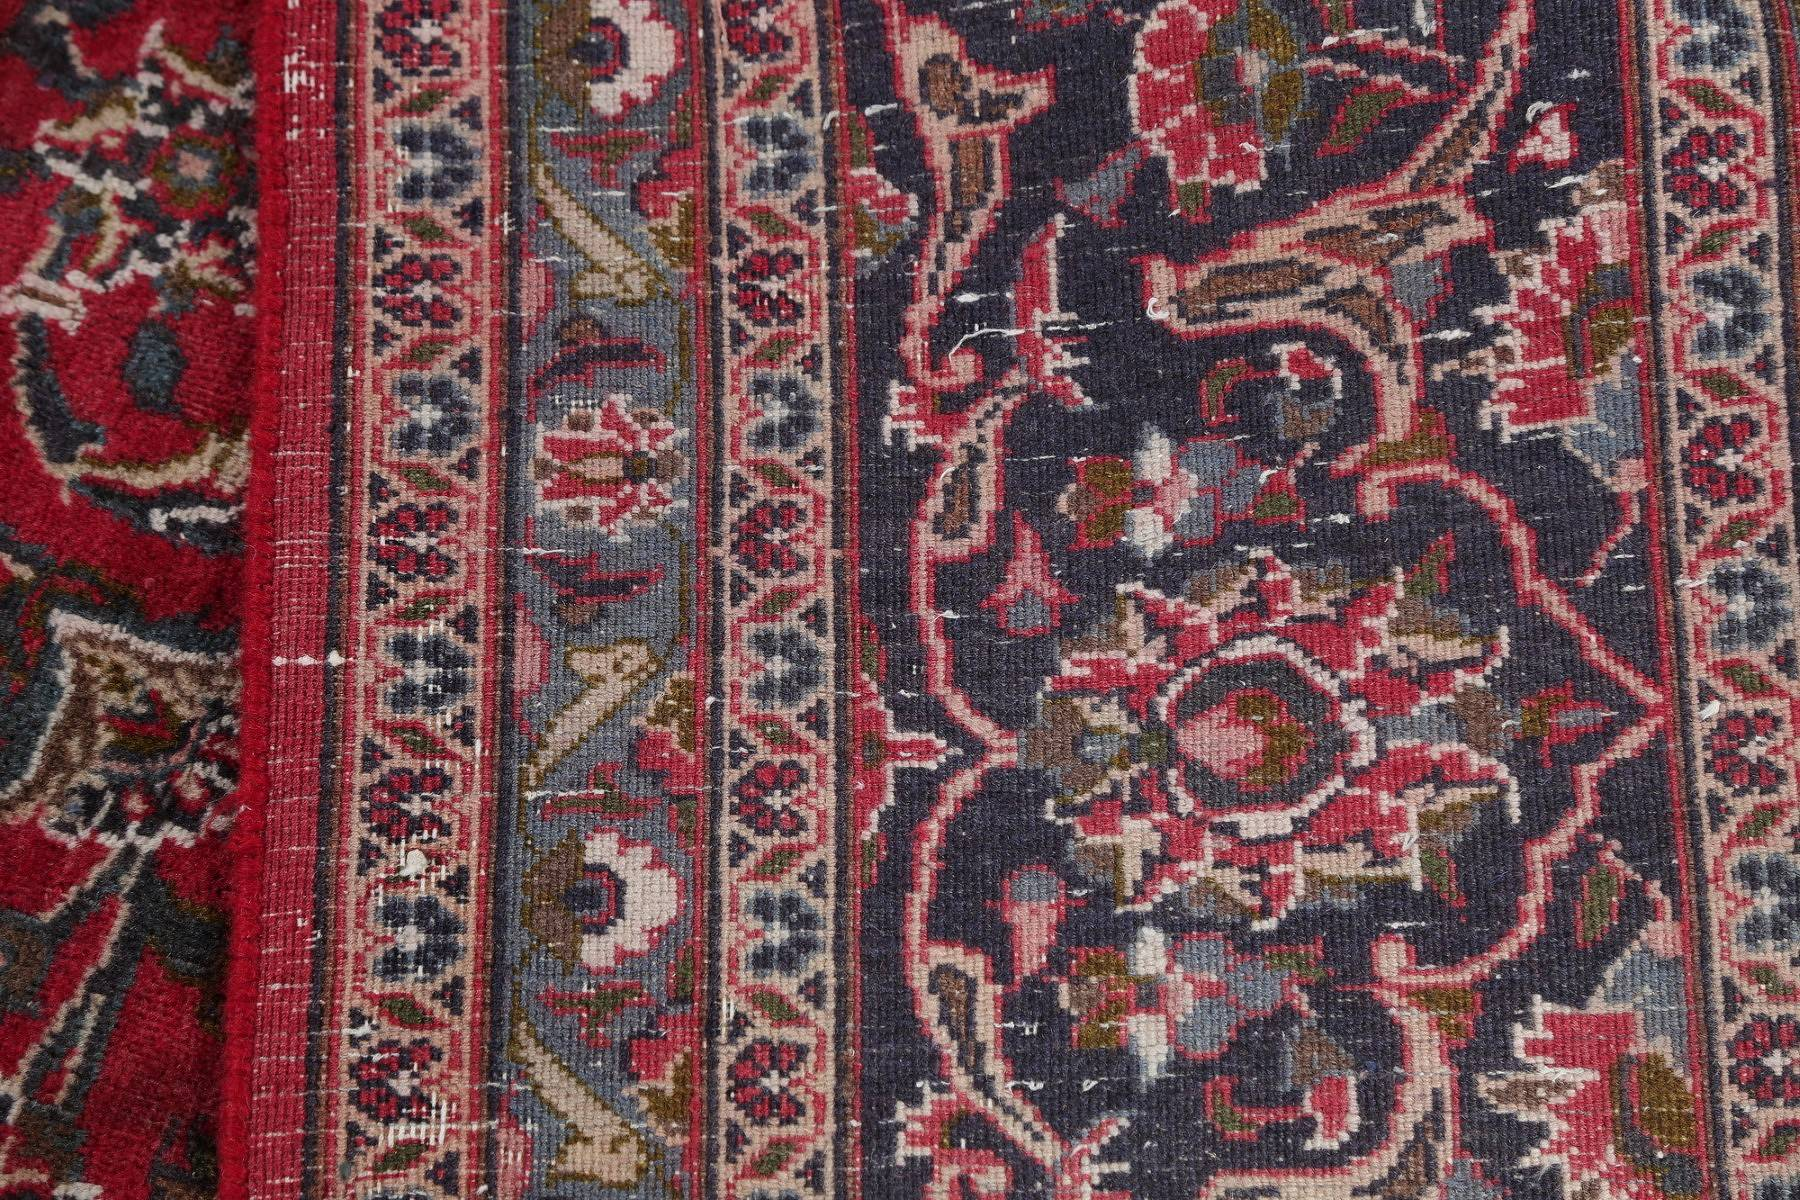 Floral Red Mashad Persian Hand-Knotted Area Rug Wool 10x13